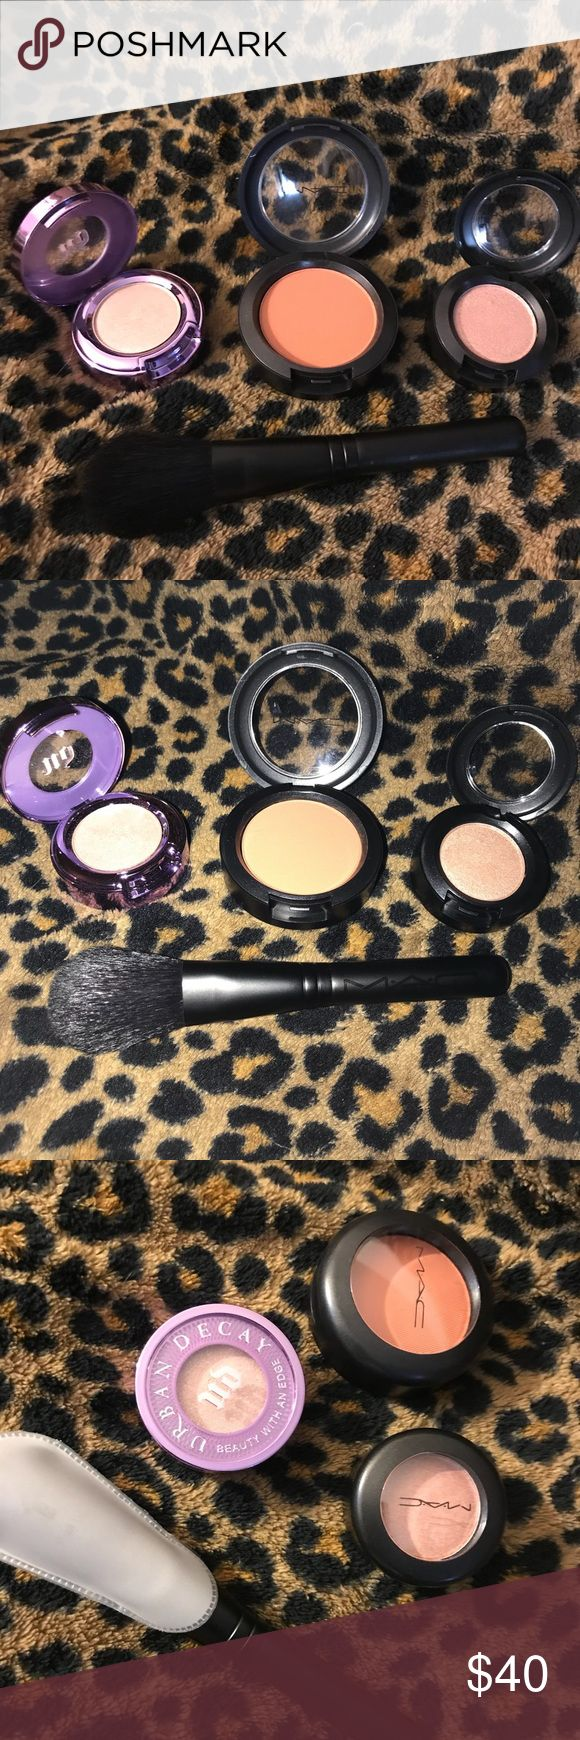 Never used before Mac and Urban Decay Bundle Urban Decay eyeshadow - Midnight Cowboy Mac (Veluxe Pearl) eyeshadow-All that Glitters Mac (Matte) blush- copper tone Mac travel size blush brush MAC Cosmetics Makeup Eyeshadow